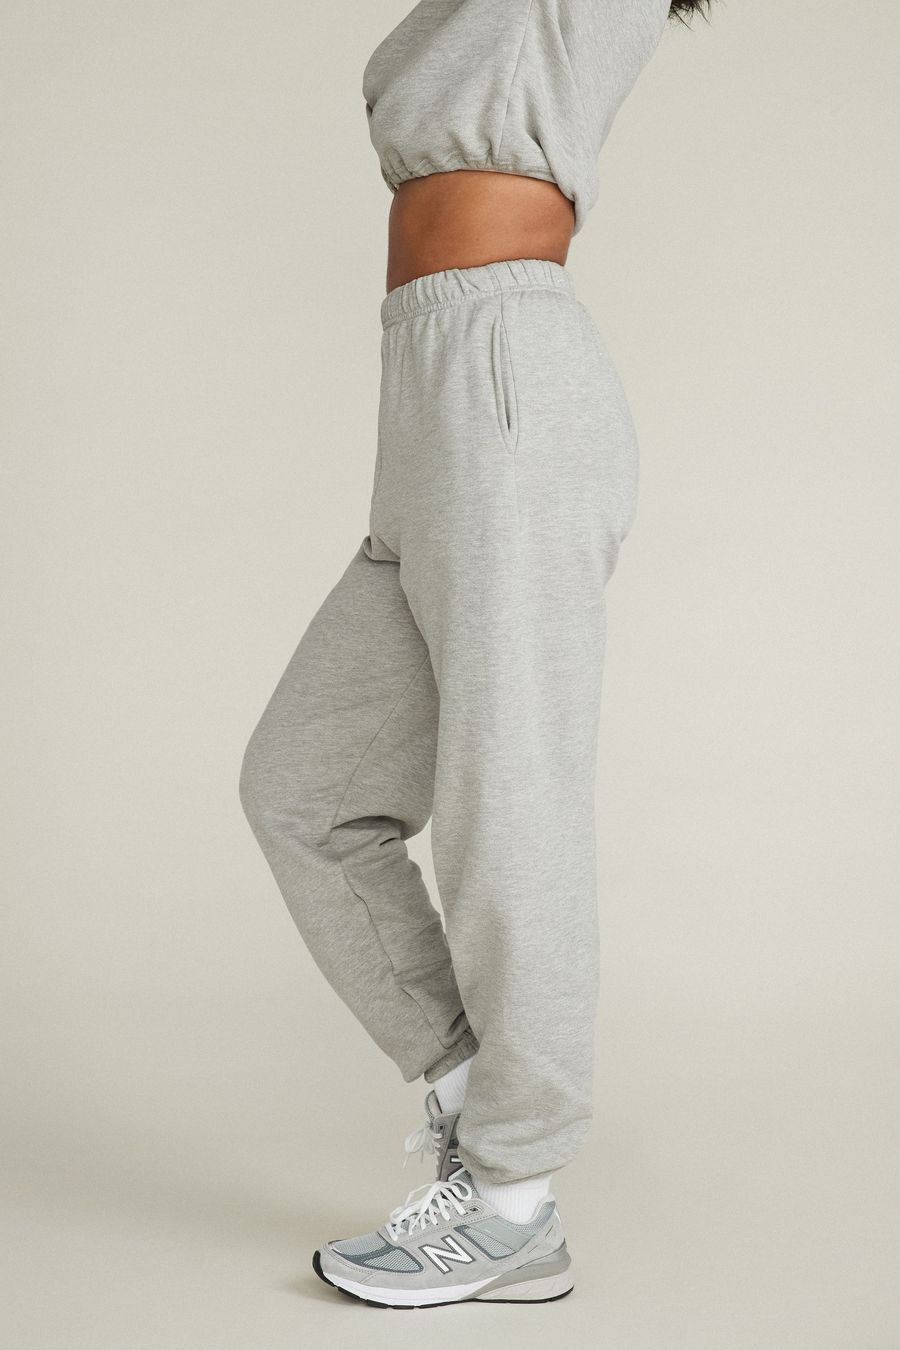 GINA SWEATPANTS - HEATHER GREY by Belen, available on shopwithbelen.com for $80 Taylor Hill Pants Exact Product